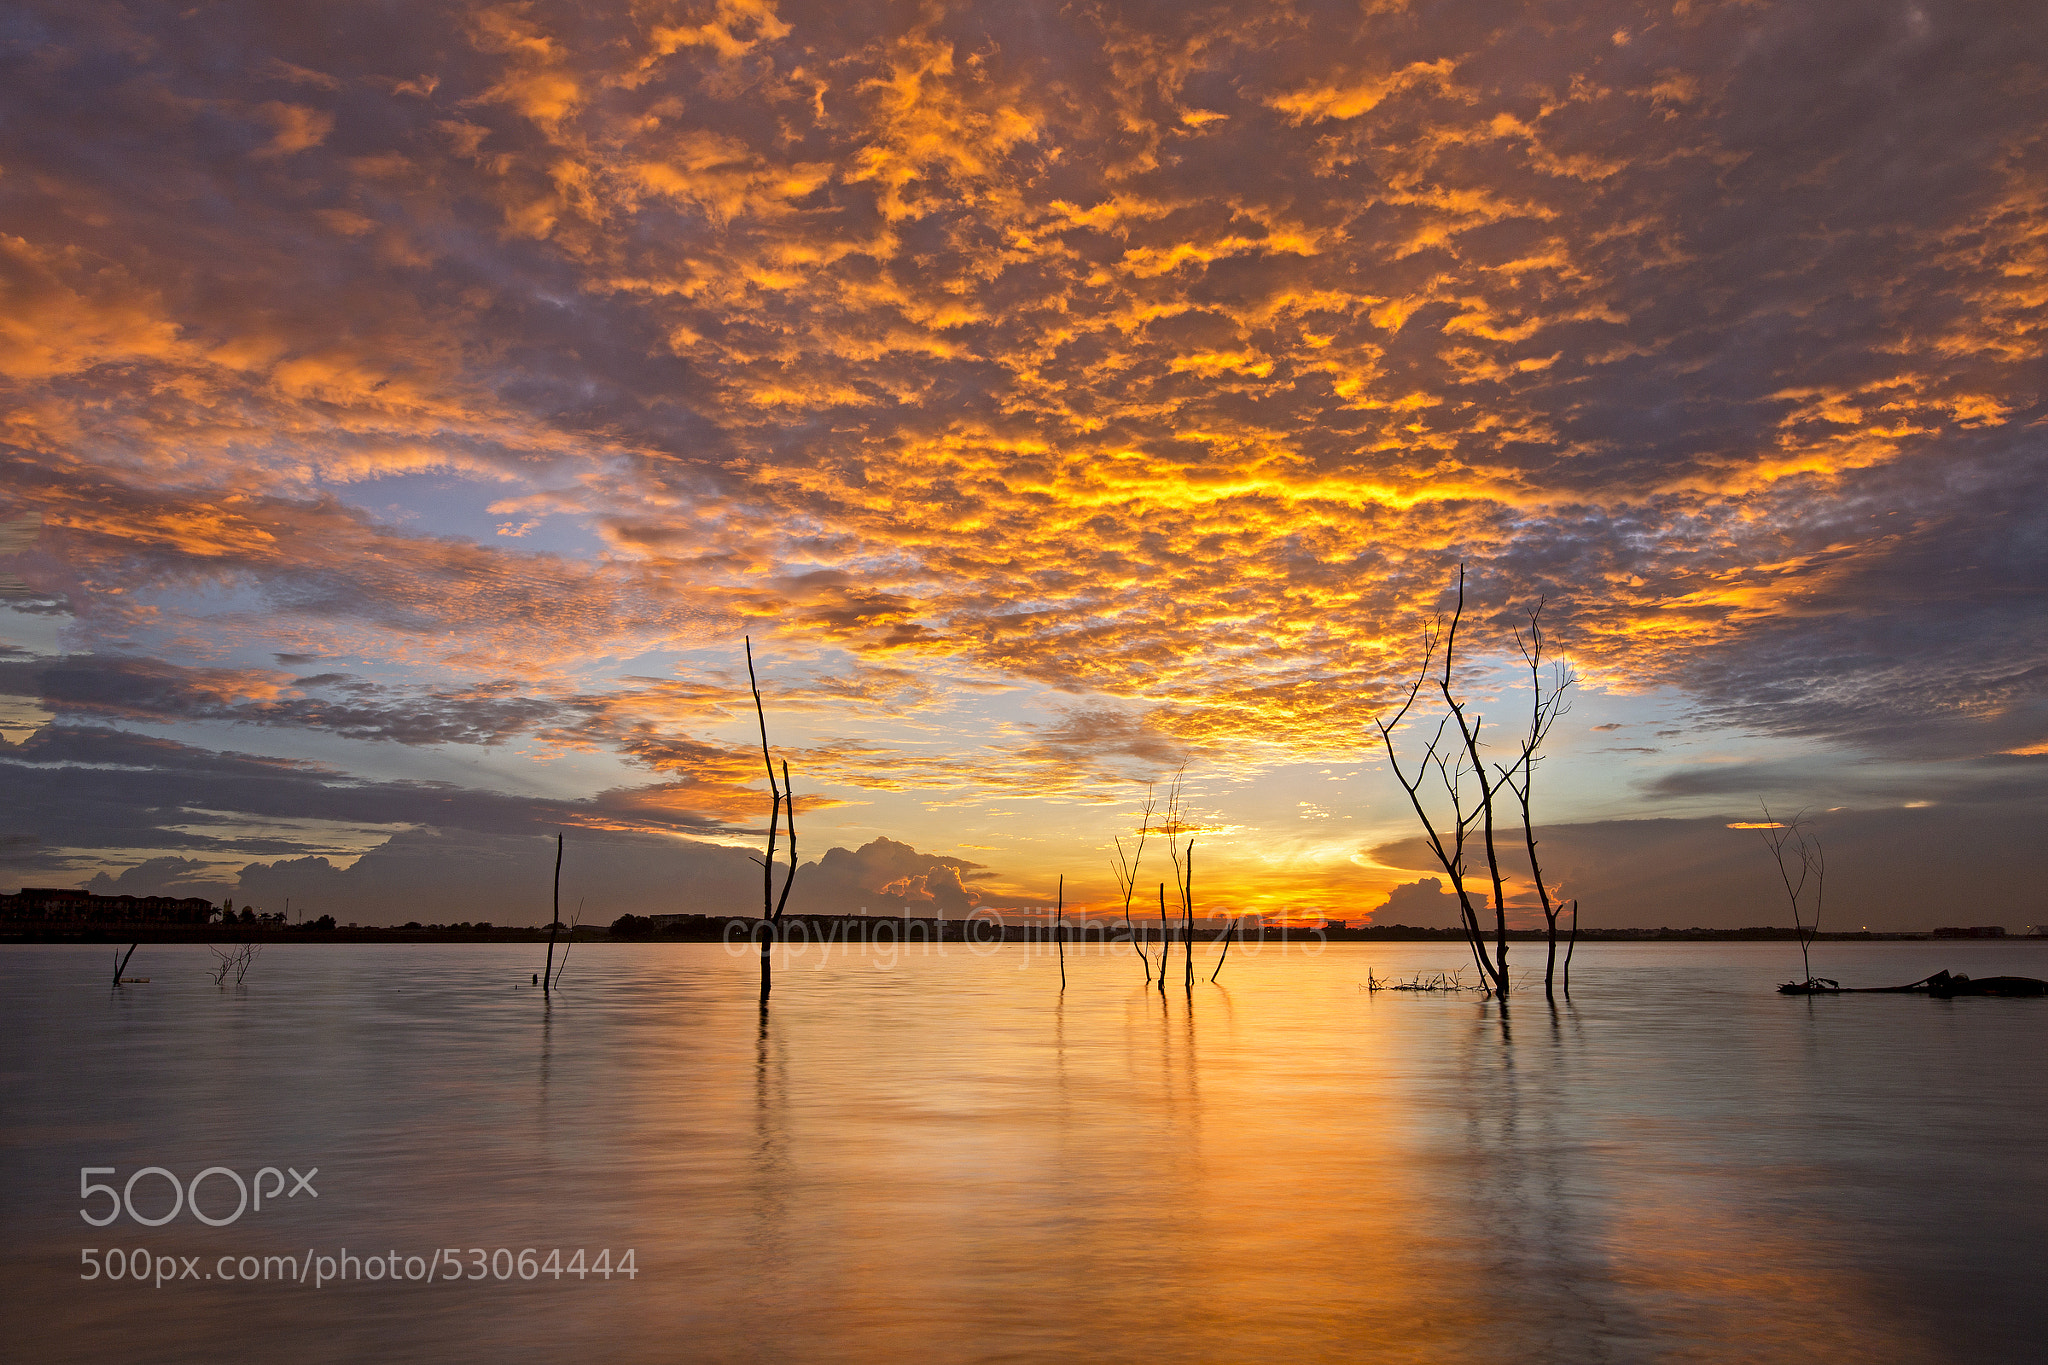 Photograph Sky On Fire by jihhaur lio on 500px